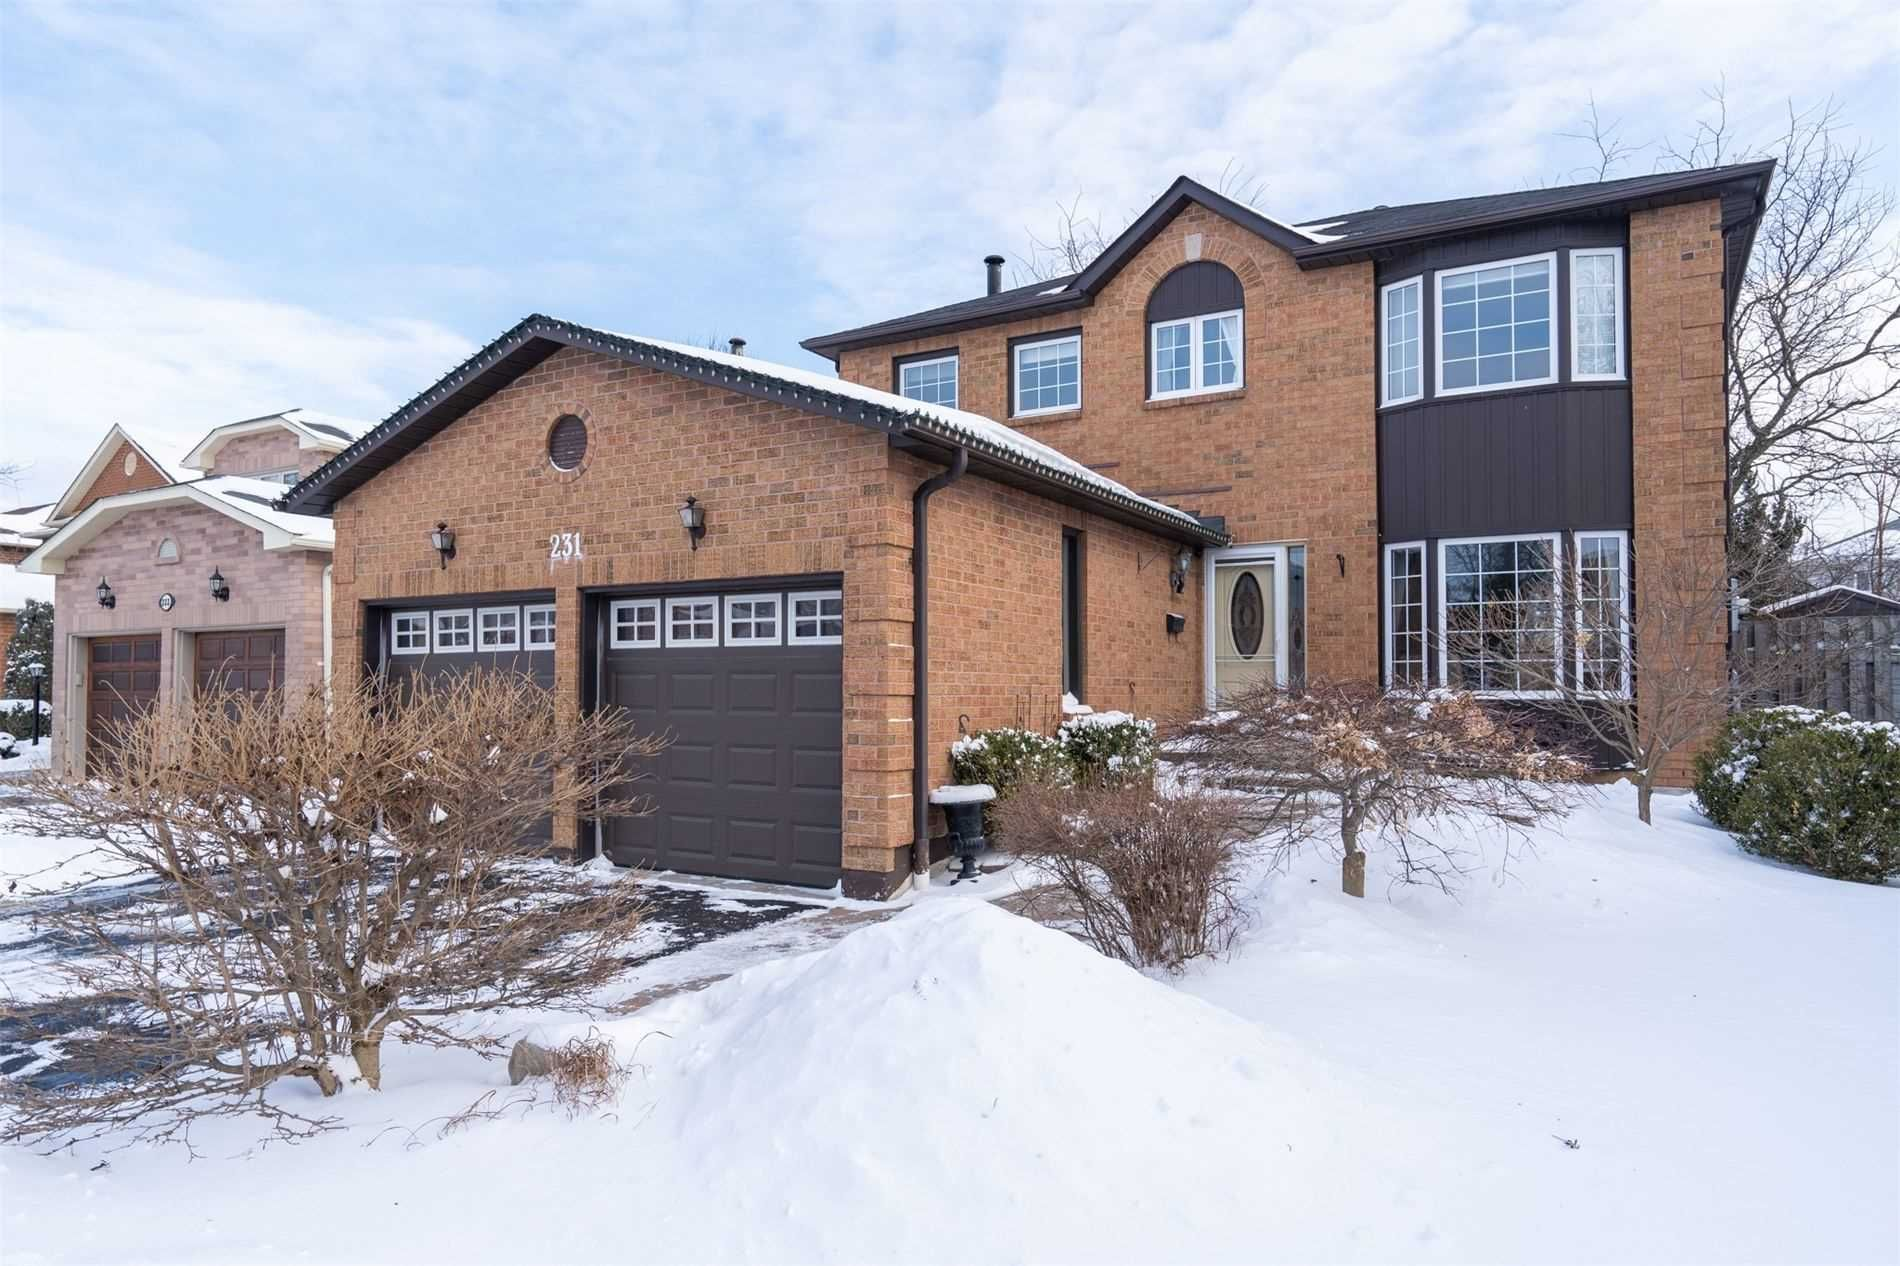 Main Photo: 231 Stonemanor Avenue in Whitby: Pringle Creek House (2-Storey) for sale : MLS®# E5118657